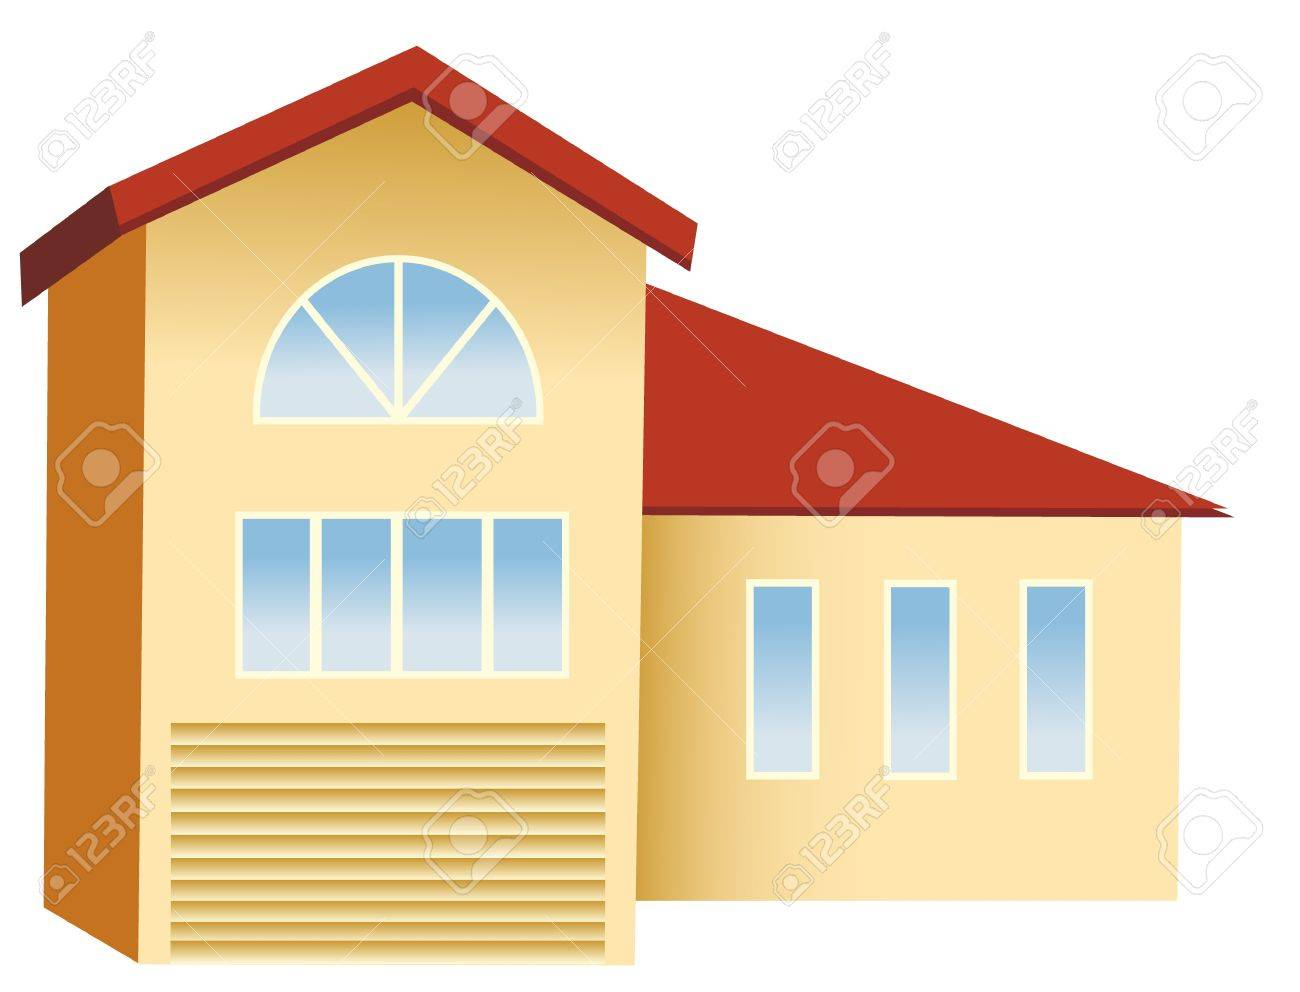 Big House With Red Roof Royalty Free Cliparts Vectors And Stock - Big cartoon house